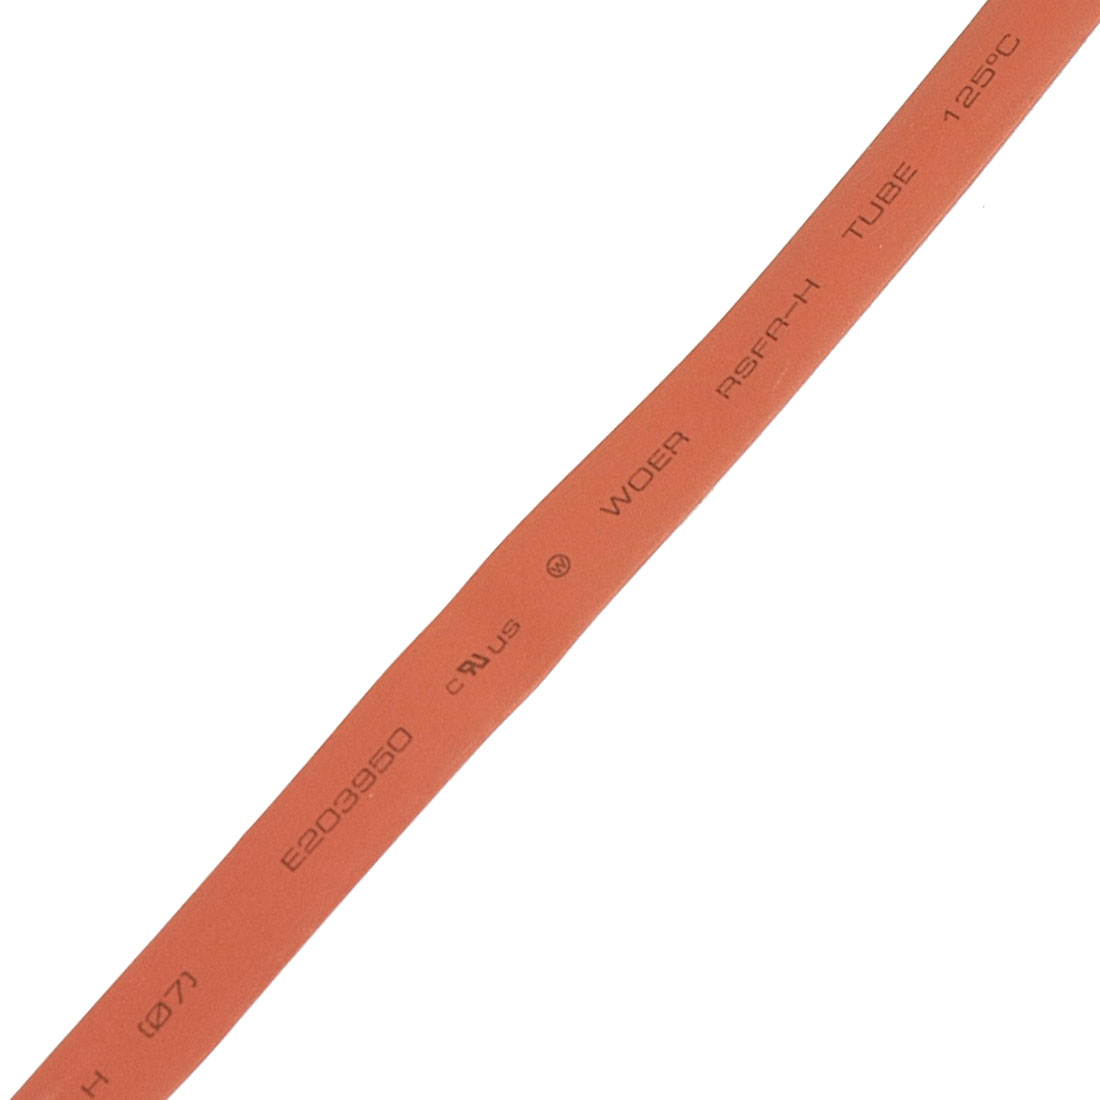 7mm Red Heat Shrinkable Tube Shrink Tubing 2m 6.6ft